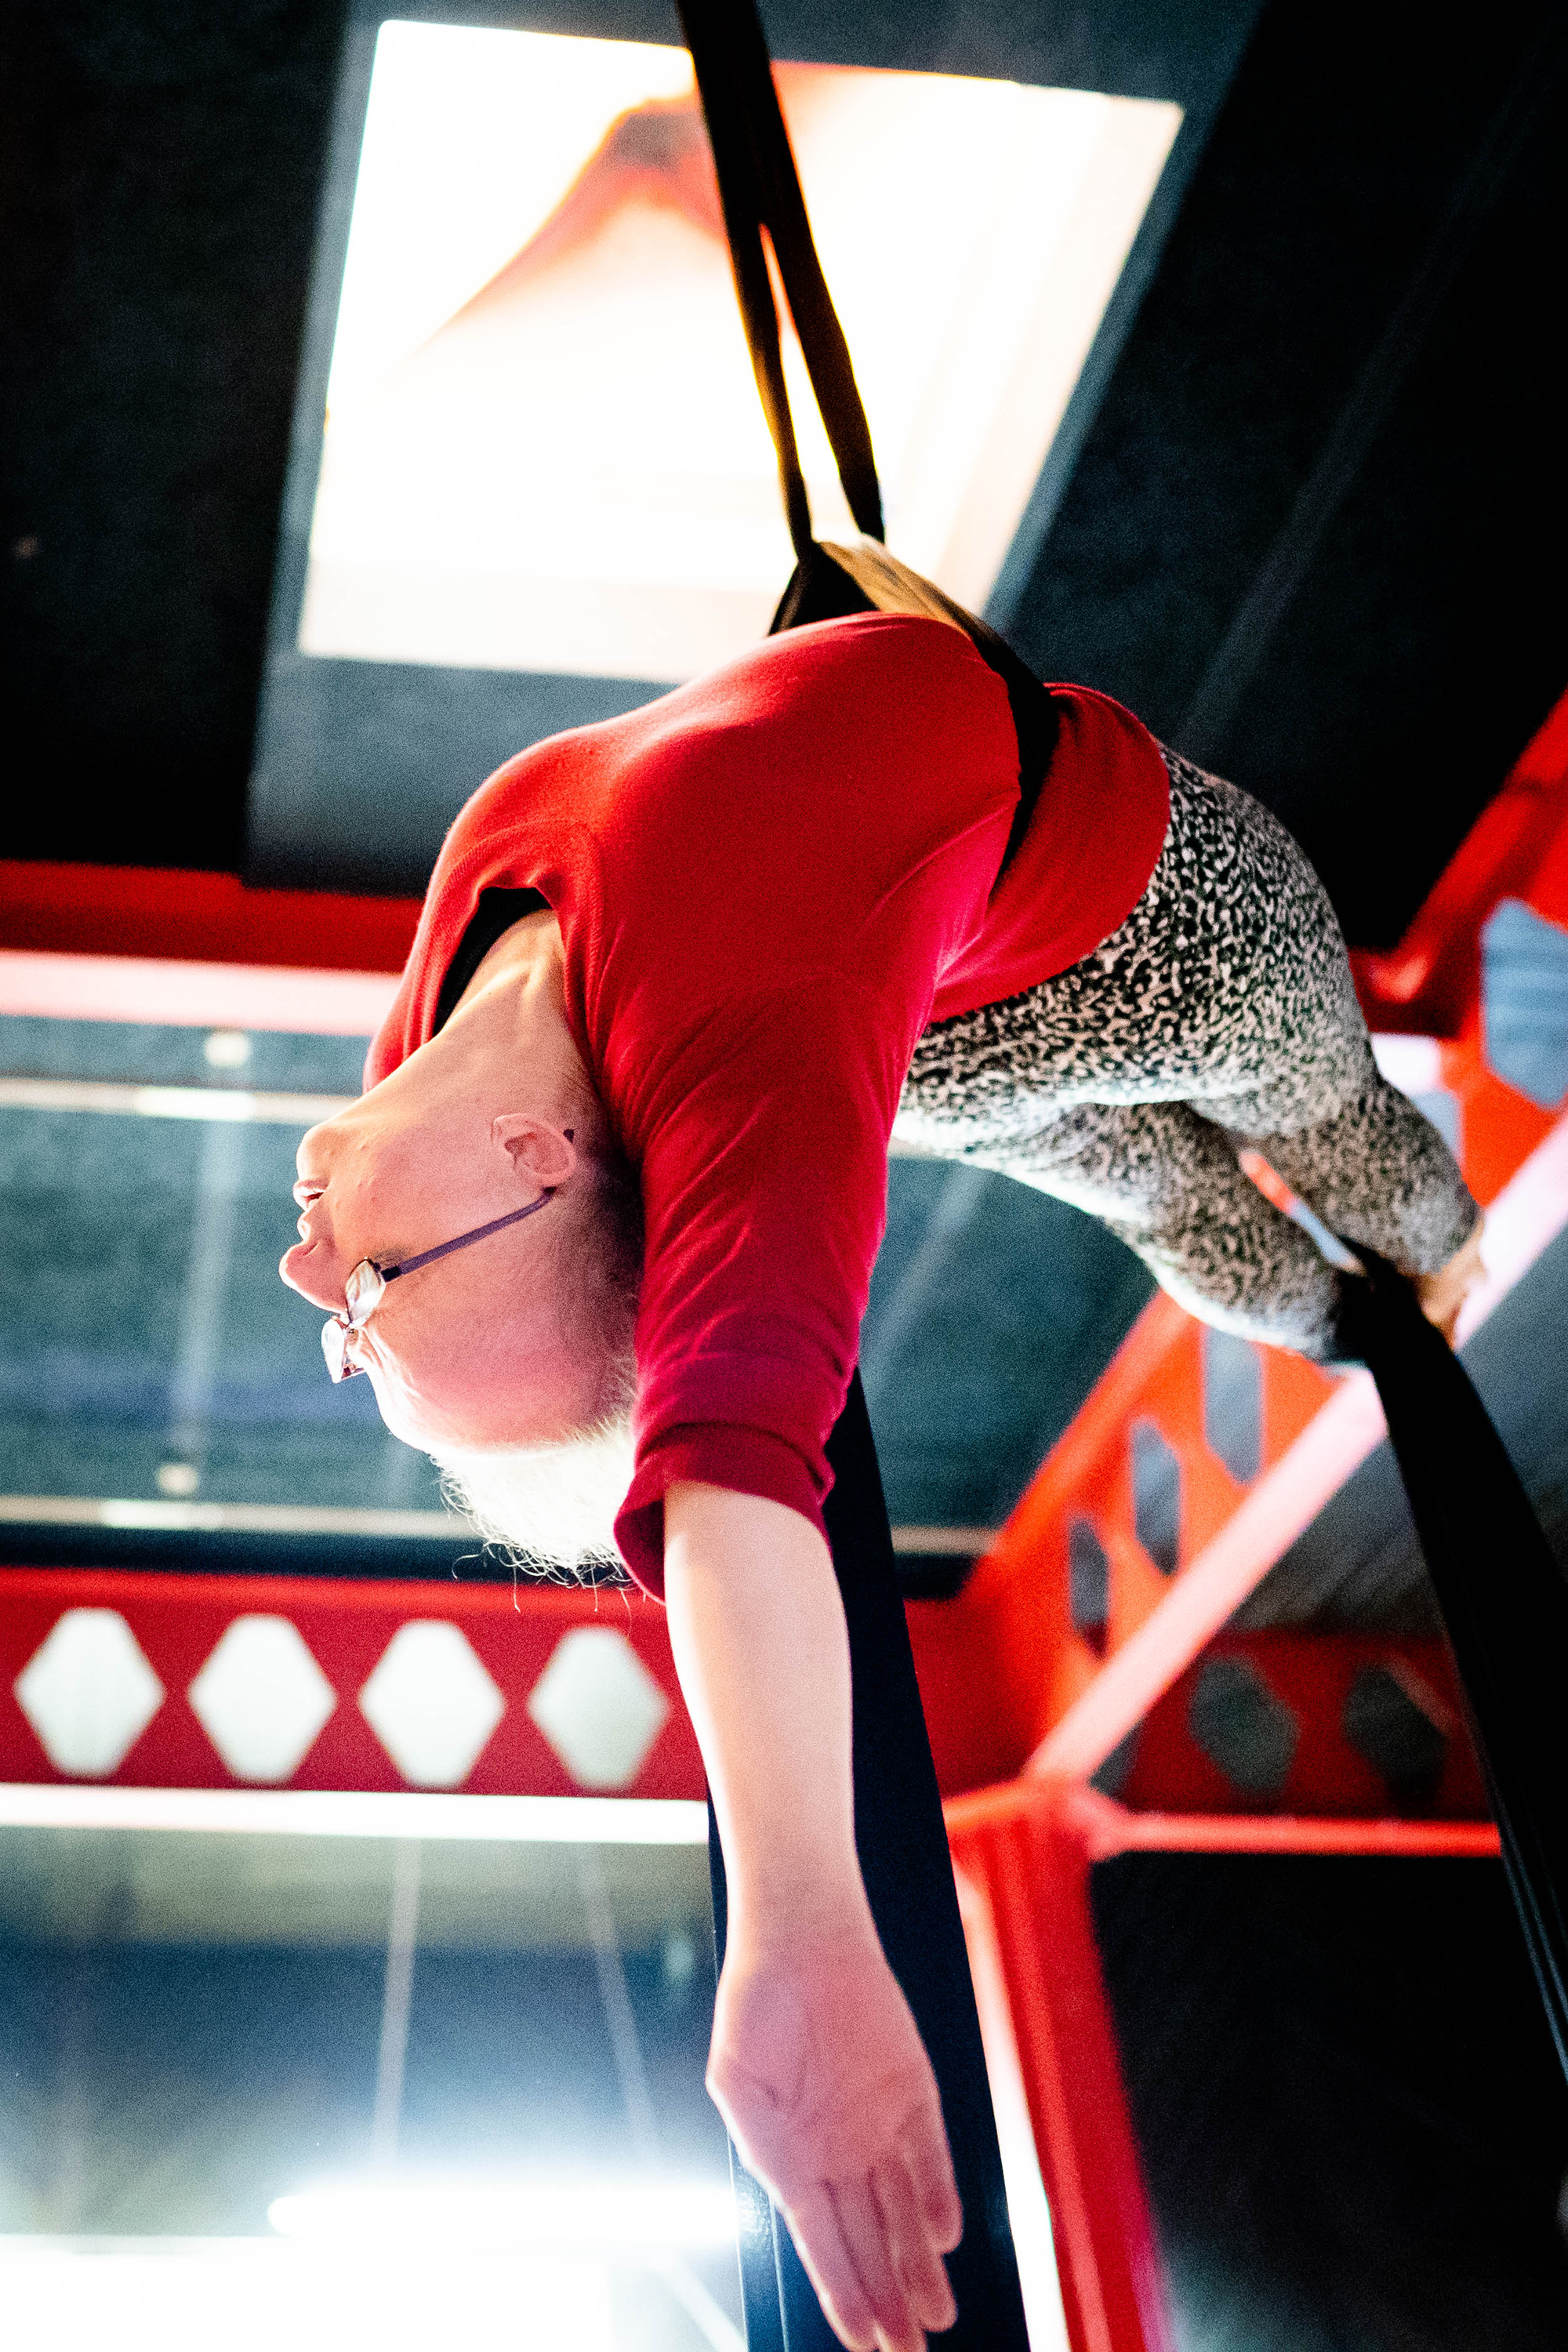 A white woman hangs from an aerial silk, her body forming a horizontal crescent shape in the air. She is photographed from below.